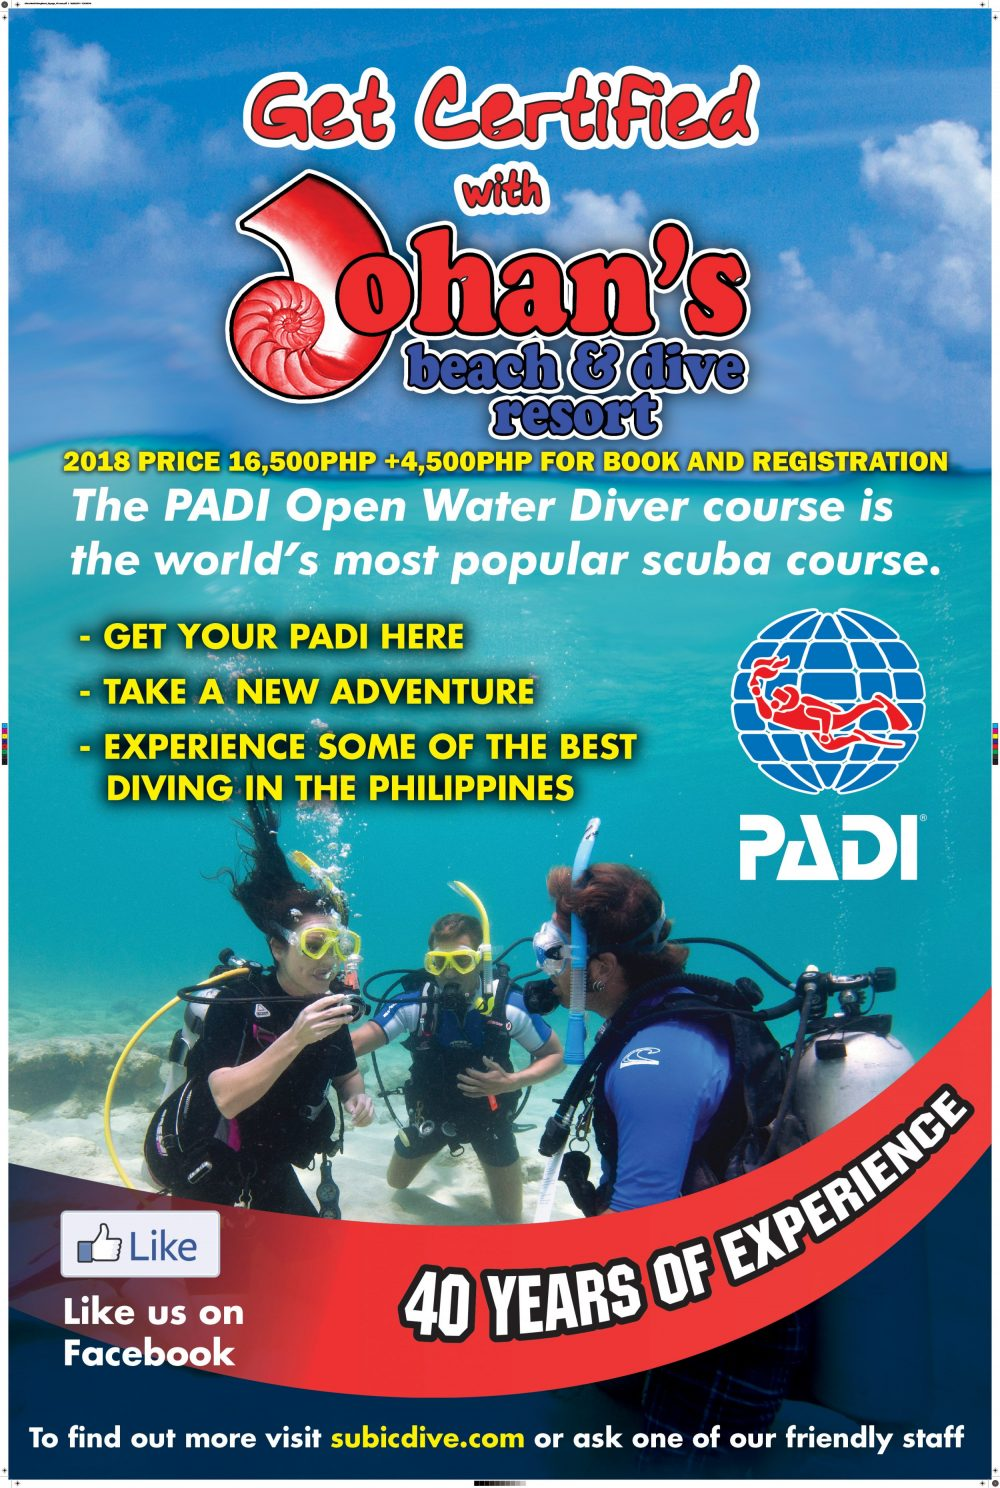 Open Water Diver Johans Beach And Dive Resort Subic Bay Philippines